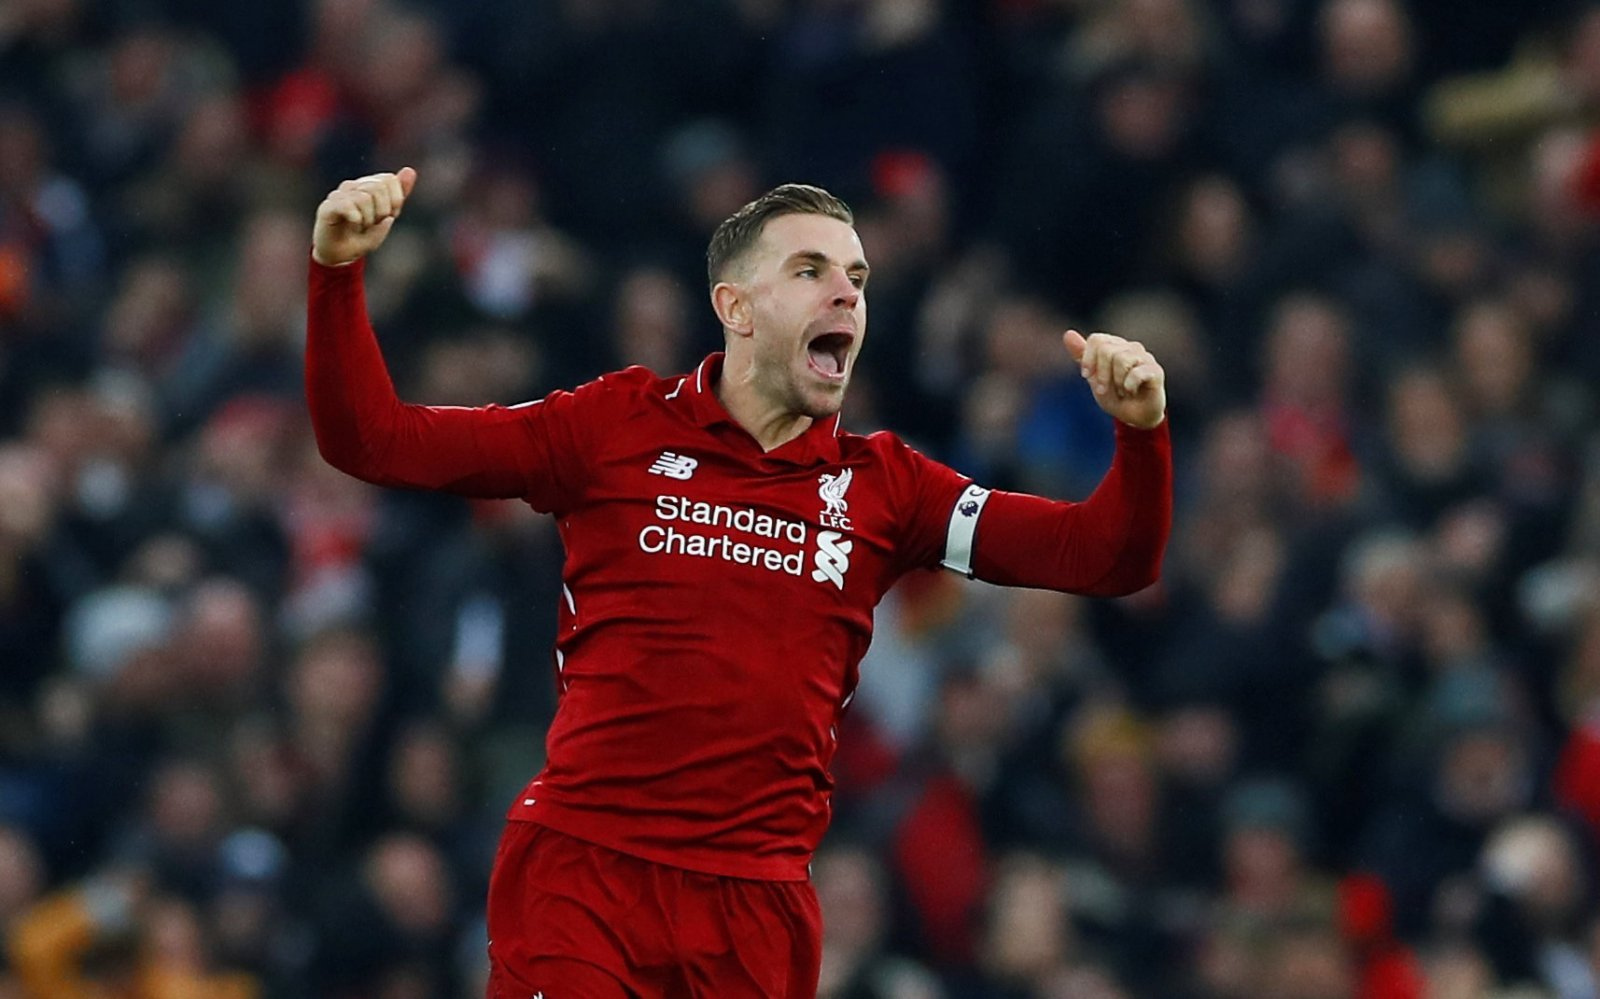 Liverpool fans on Twitter cannot get enough of Jordan Henderson of late